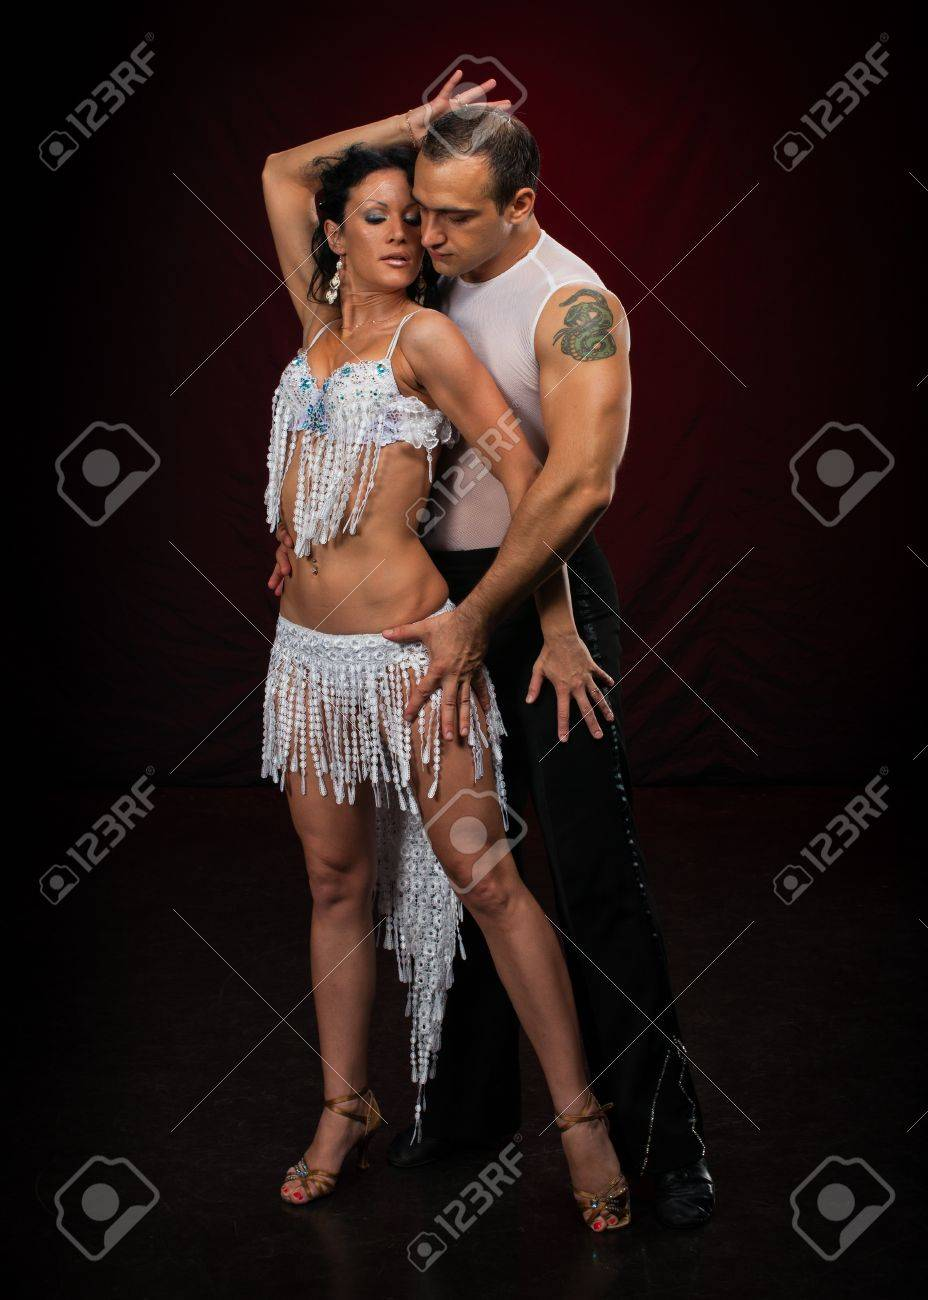 Dancing young couple on a dark background. Stock Photo - 11816572